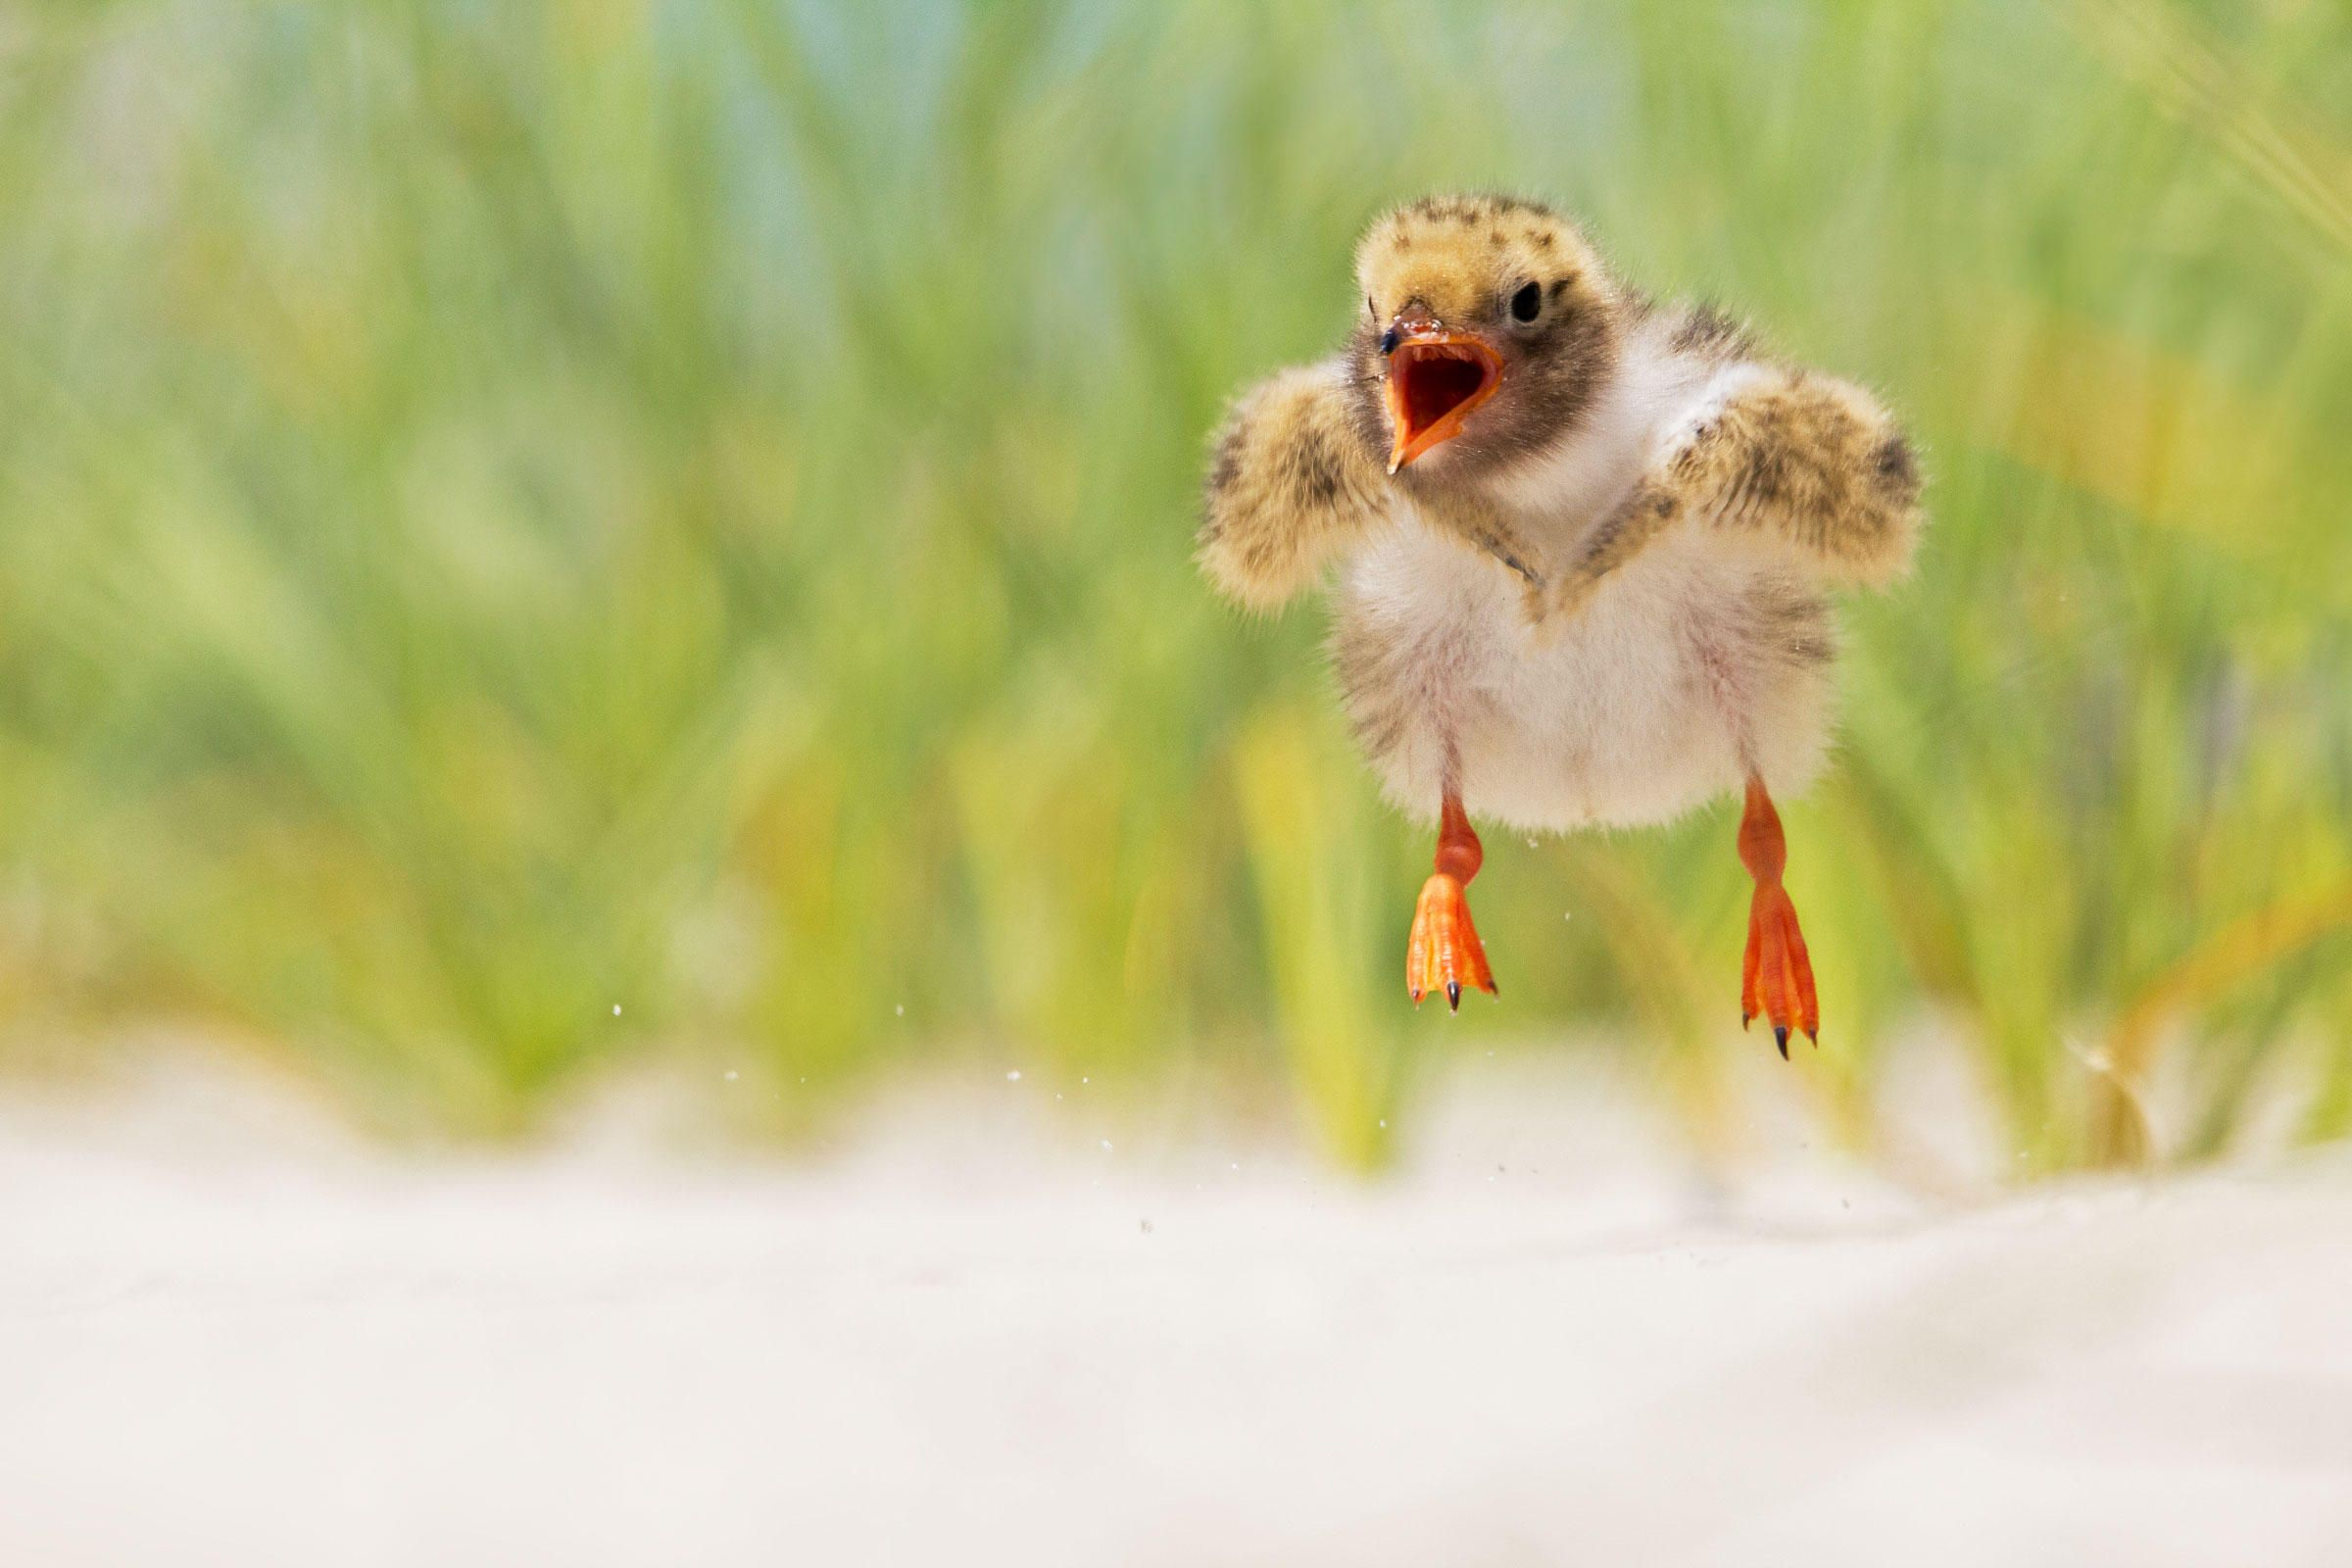 Follow These Pro Tips For Photographing Shorebirdsto Capture This Photo Of A Common Tern